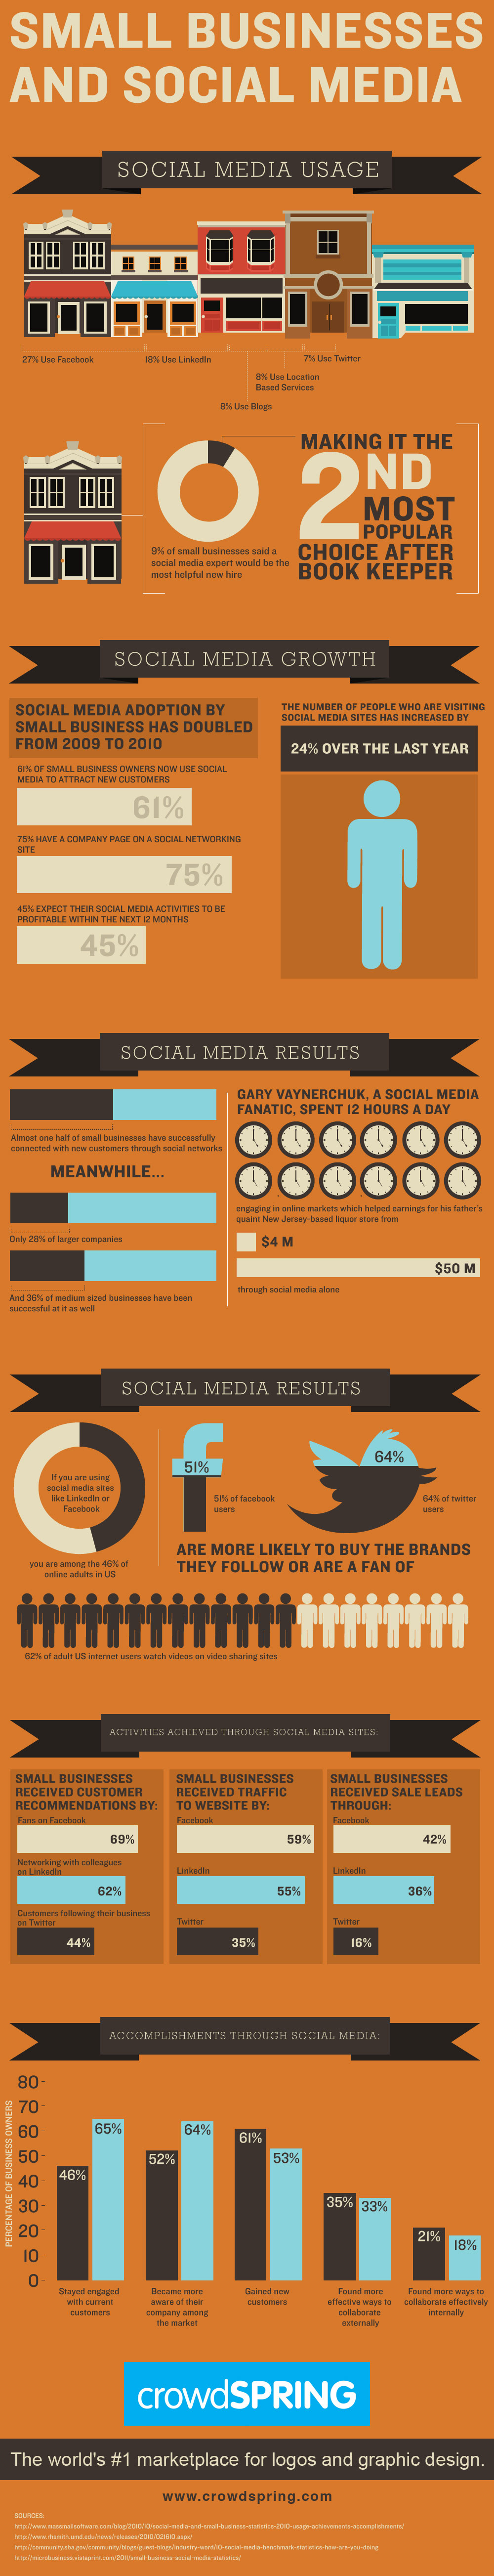 crowdspring infographic